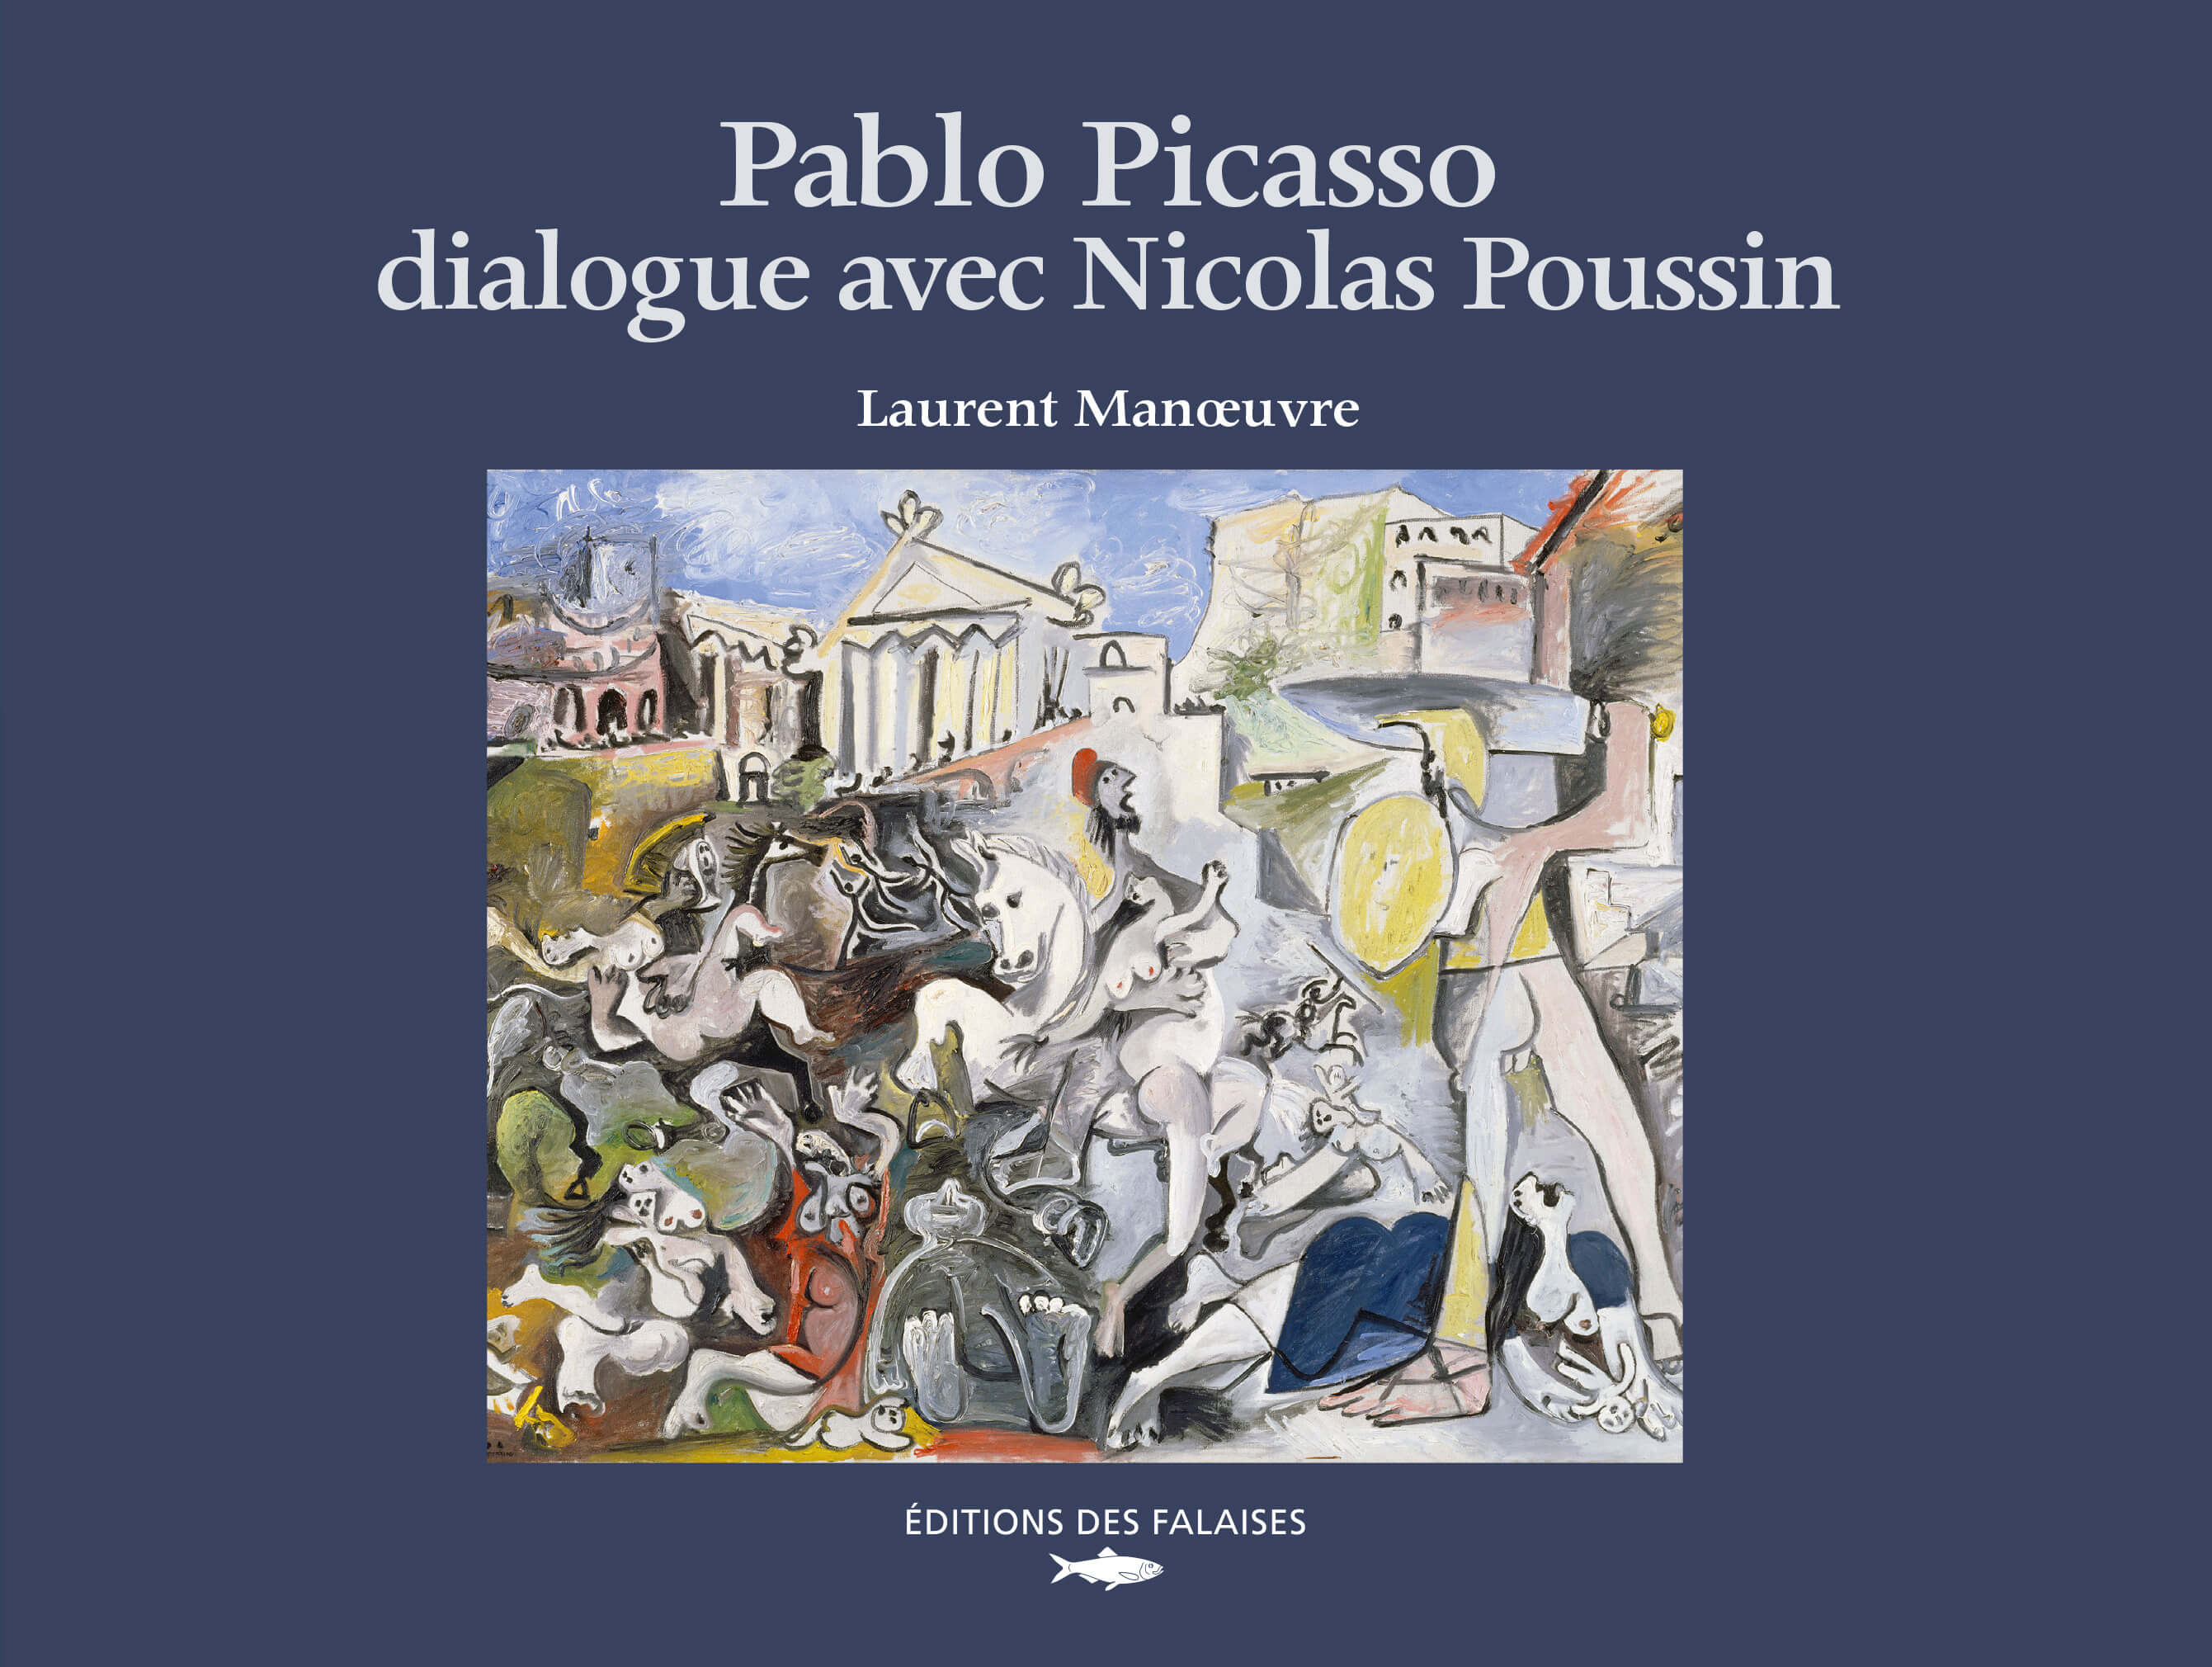 Couverture picasso projet2.indd